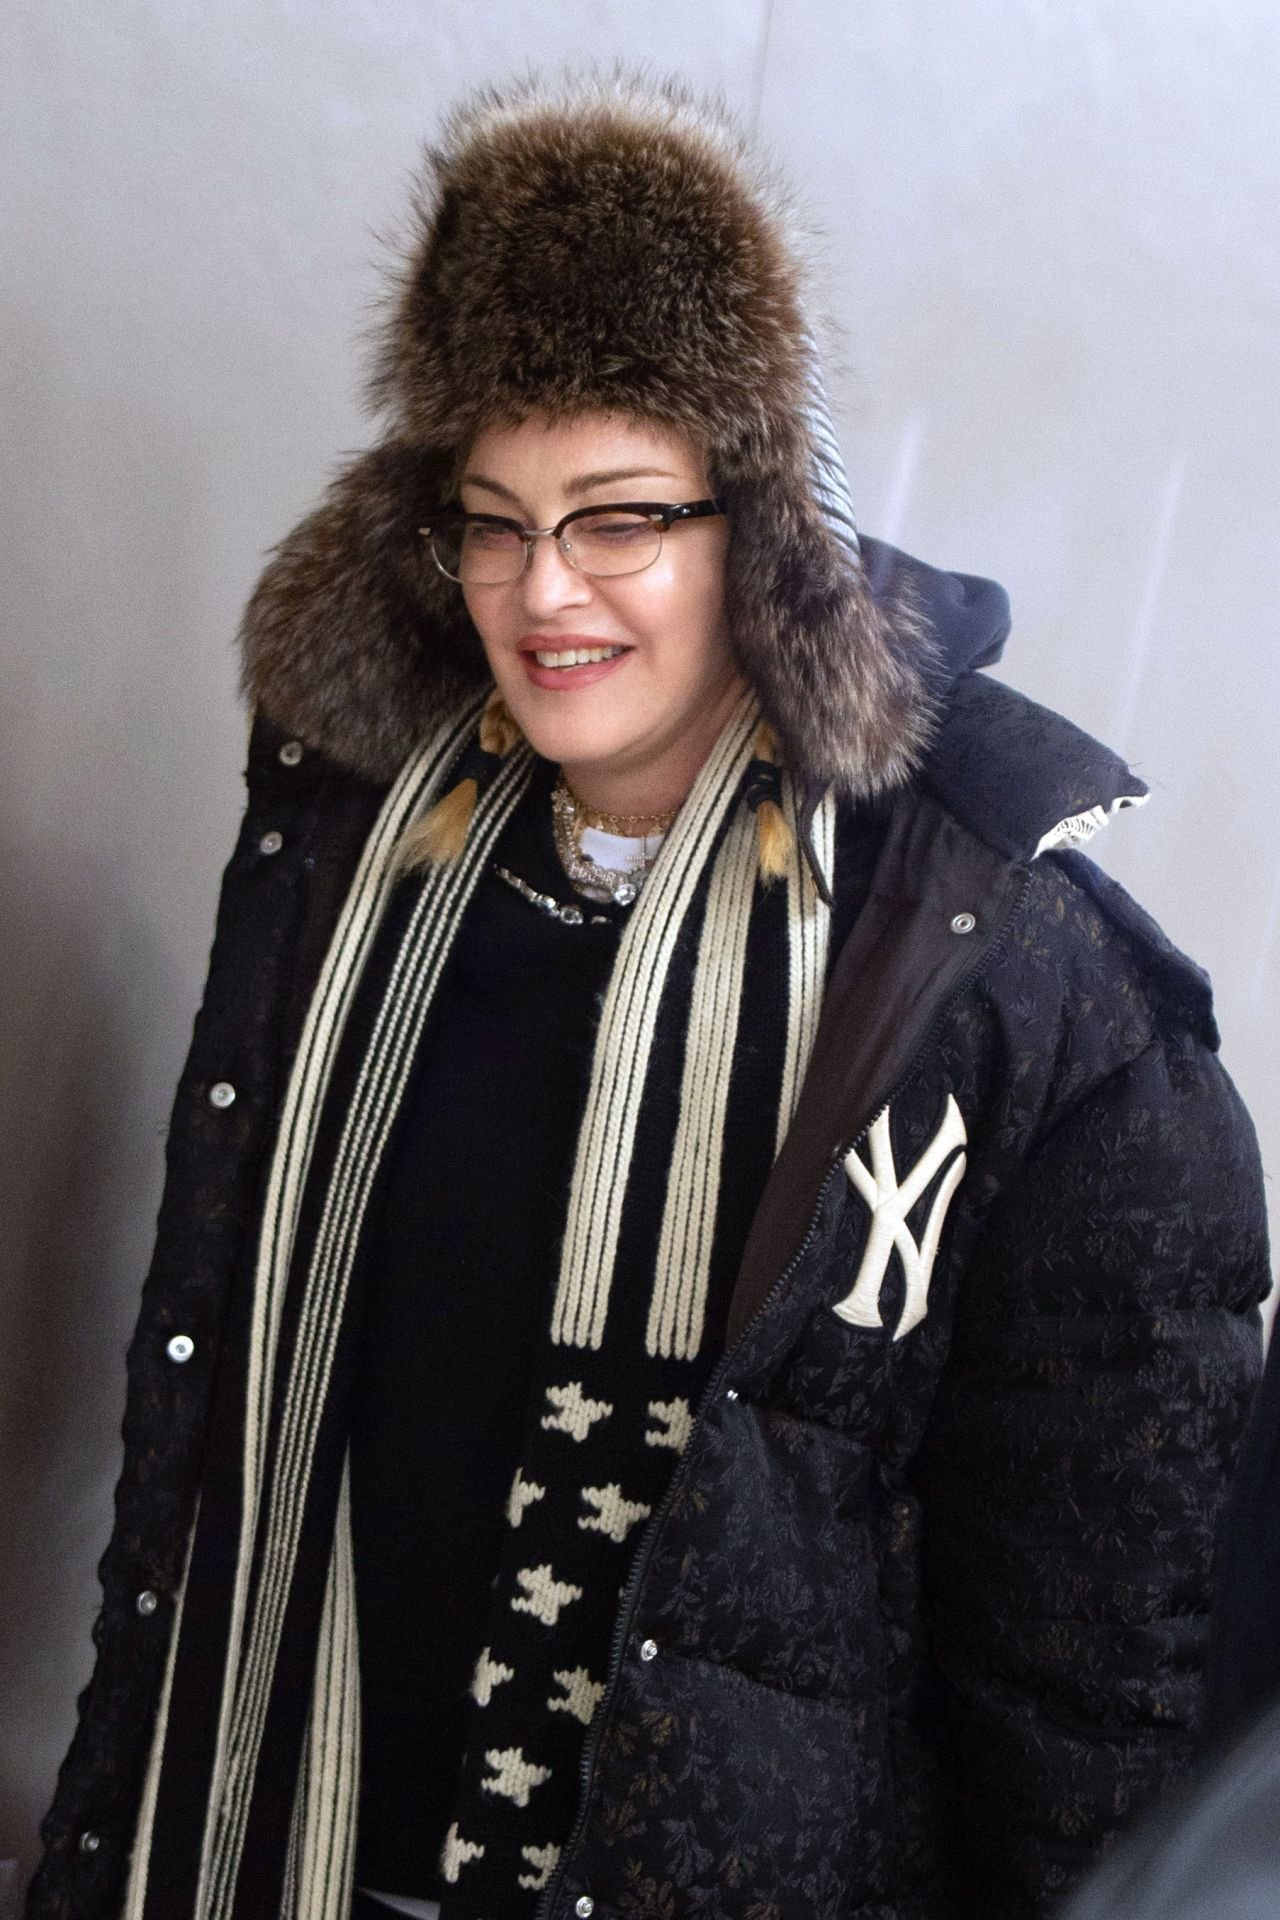 The Best Madonna In Travel Outfit New York 01 13 2019 Pictures